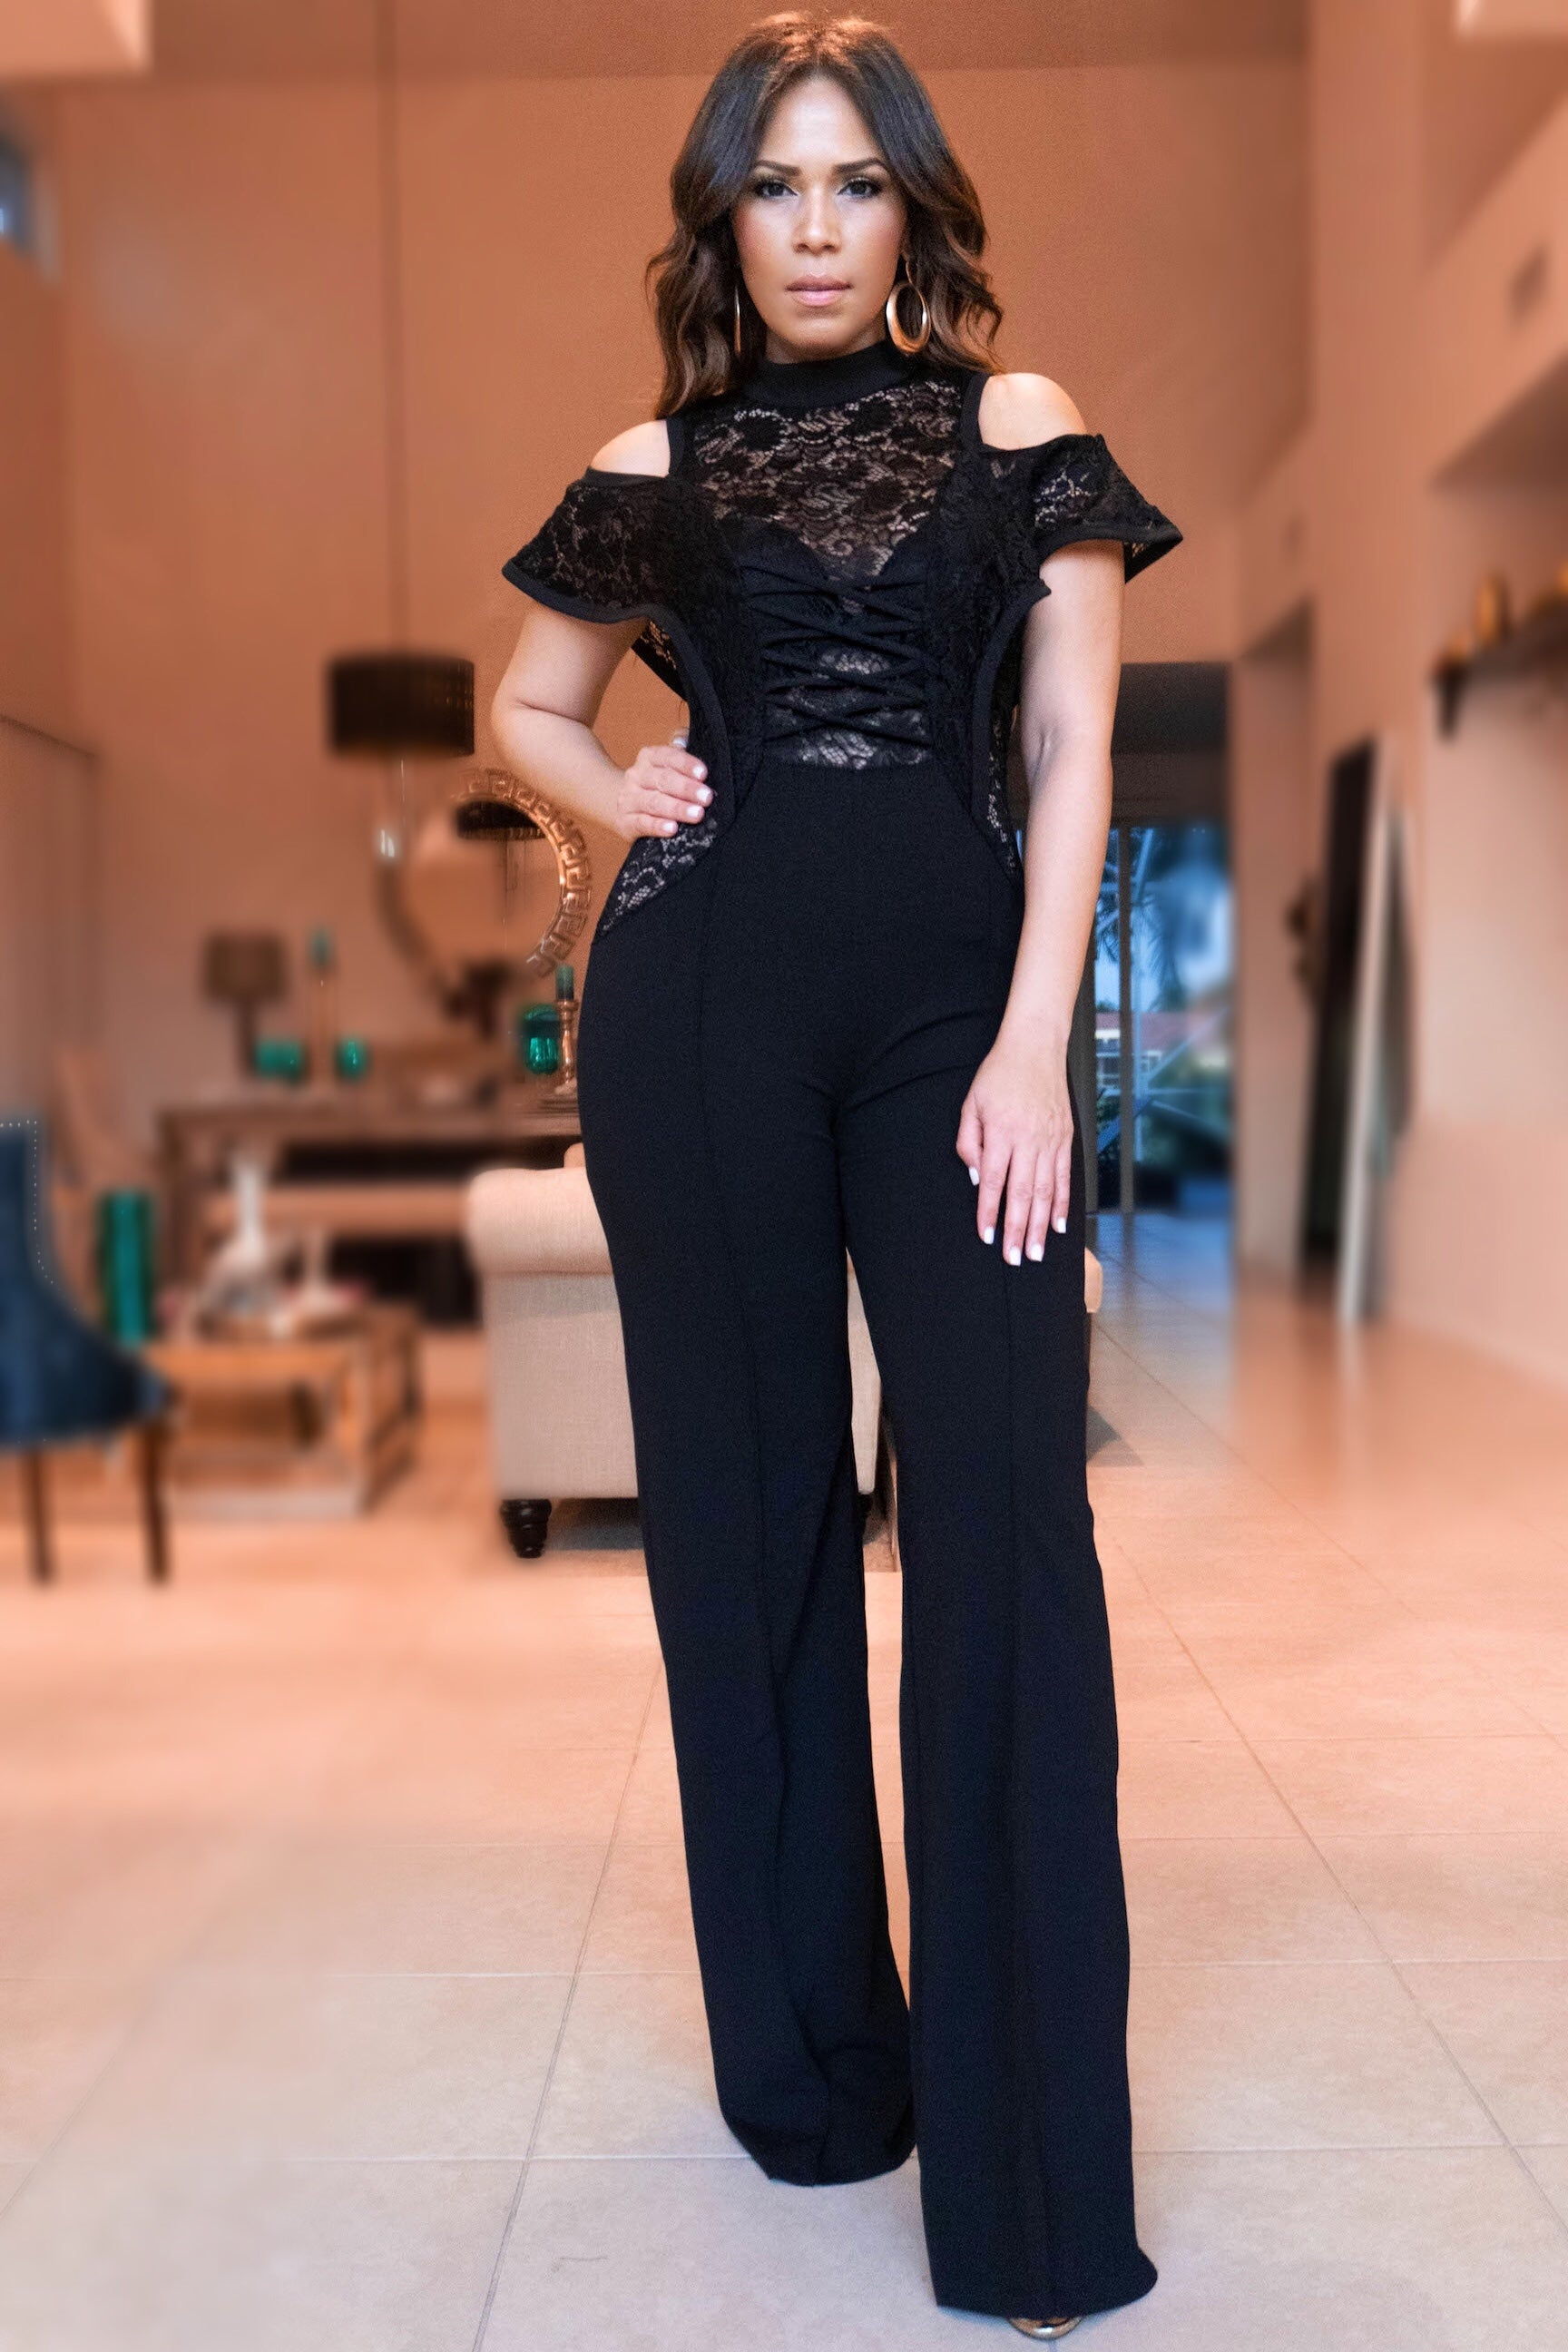 dad5b2195a0d7 Antonia Laced Up Classy Jumpsuit W  Floral Lace Inserts - MY SEXY STYLES